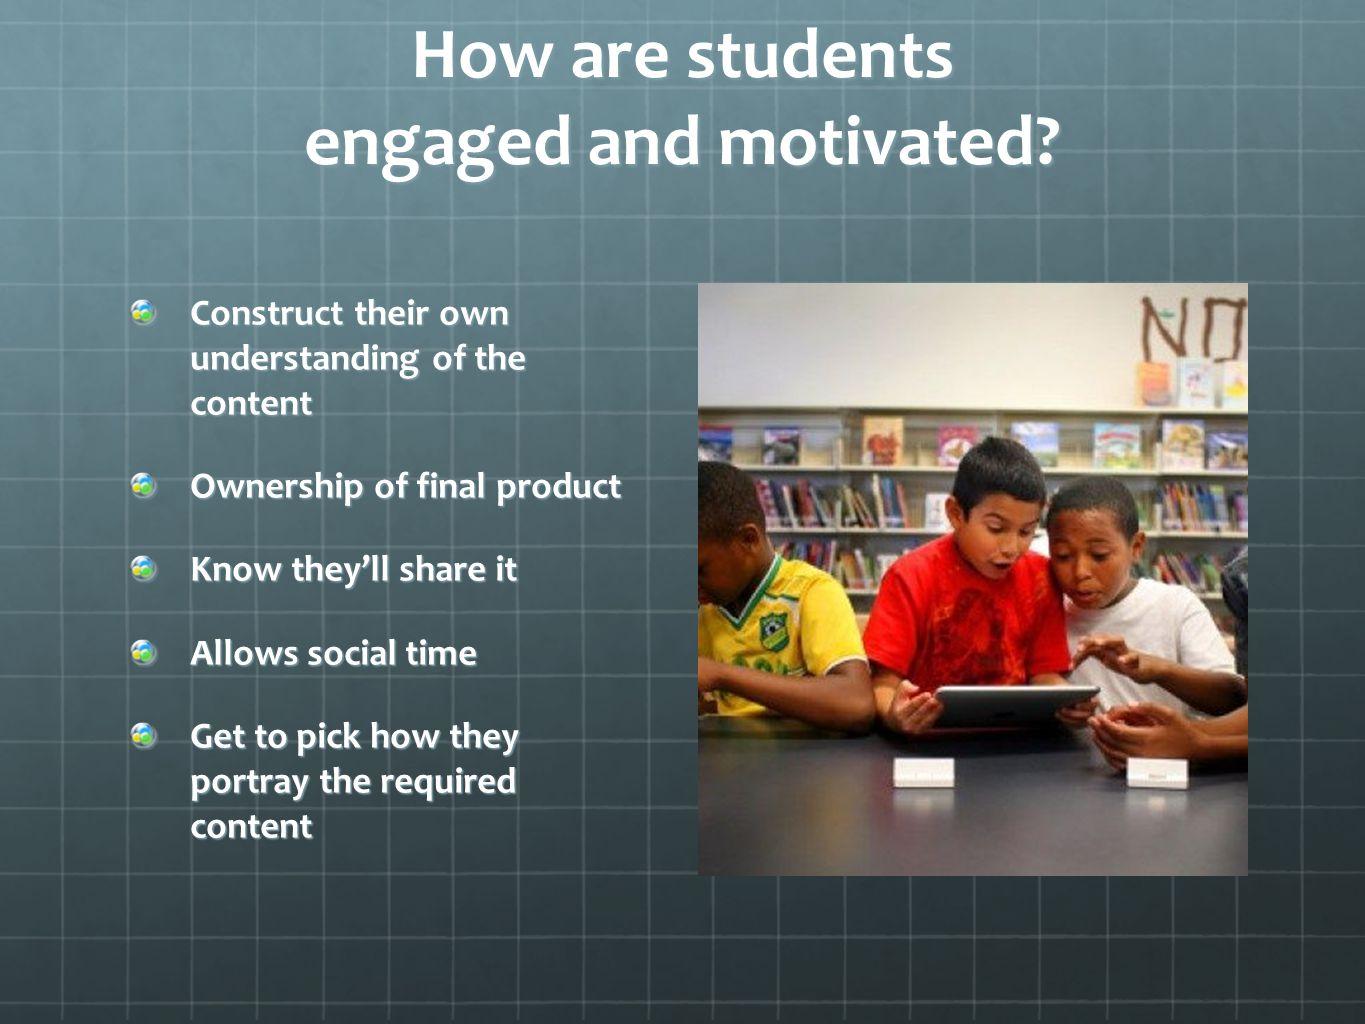 How are students engaged and motivated.